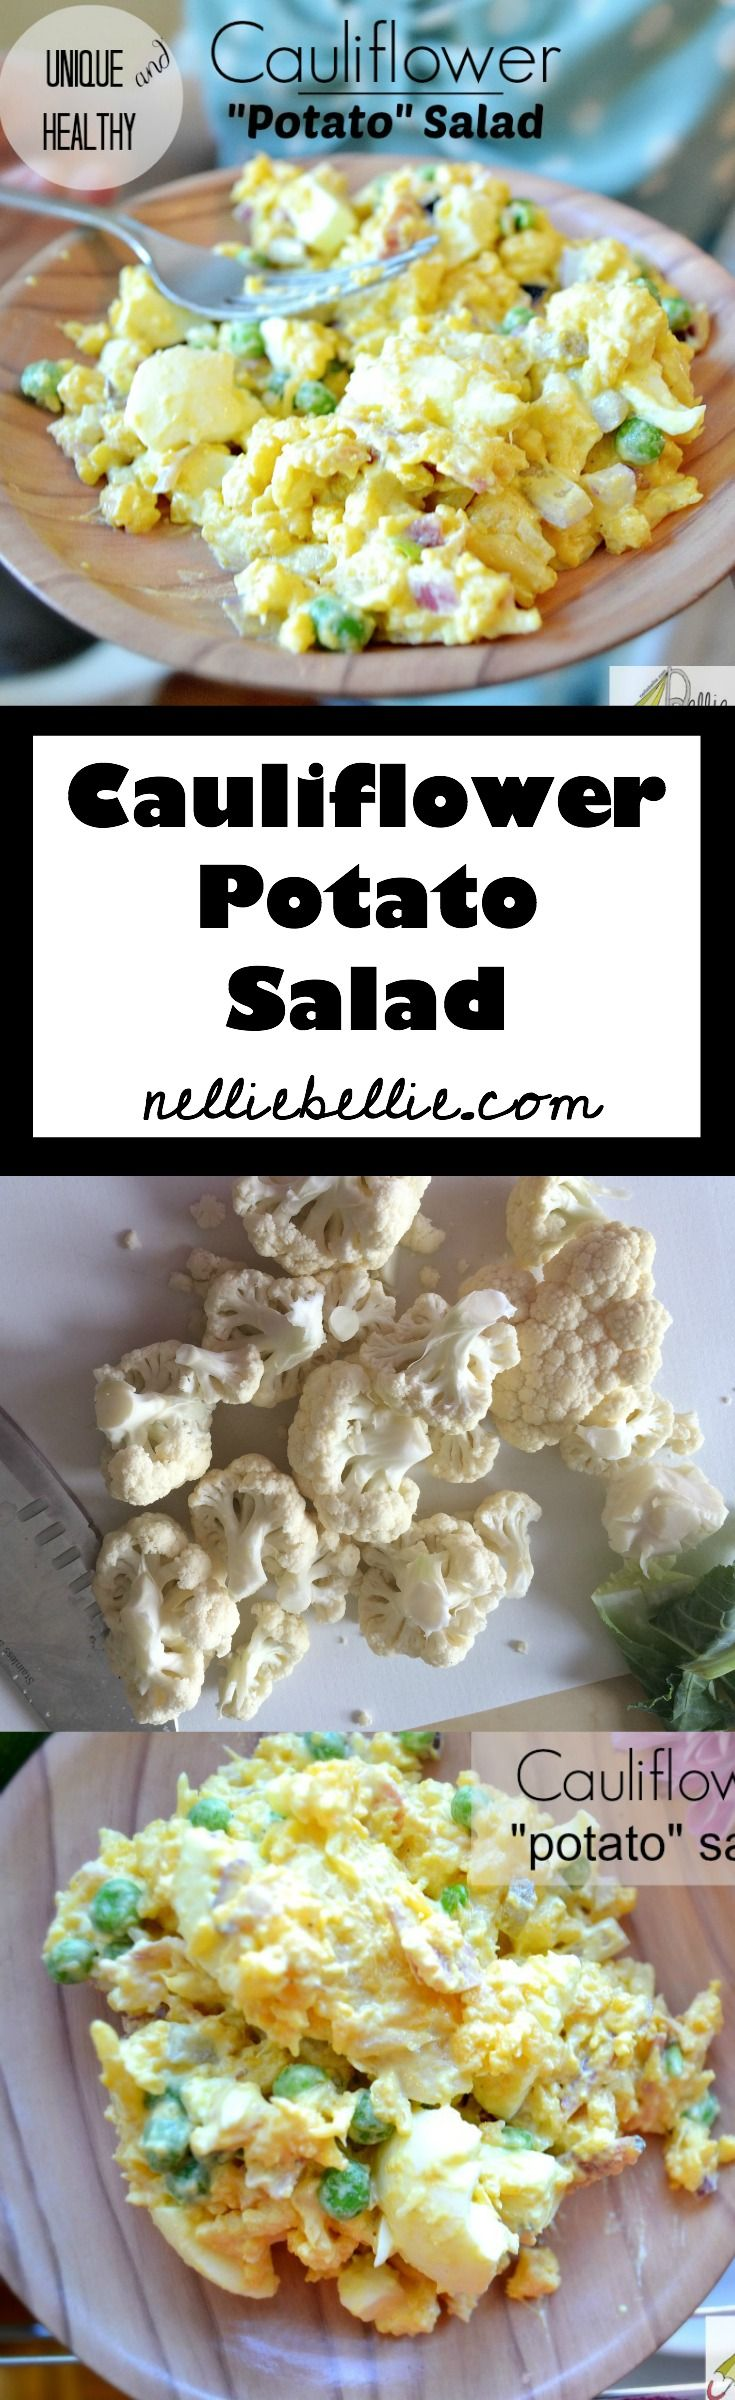 Bestselling Paleo Recipe Book http://www.healthyoptins.com/ Substitute Cauliflower for Potatoes in a delicious